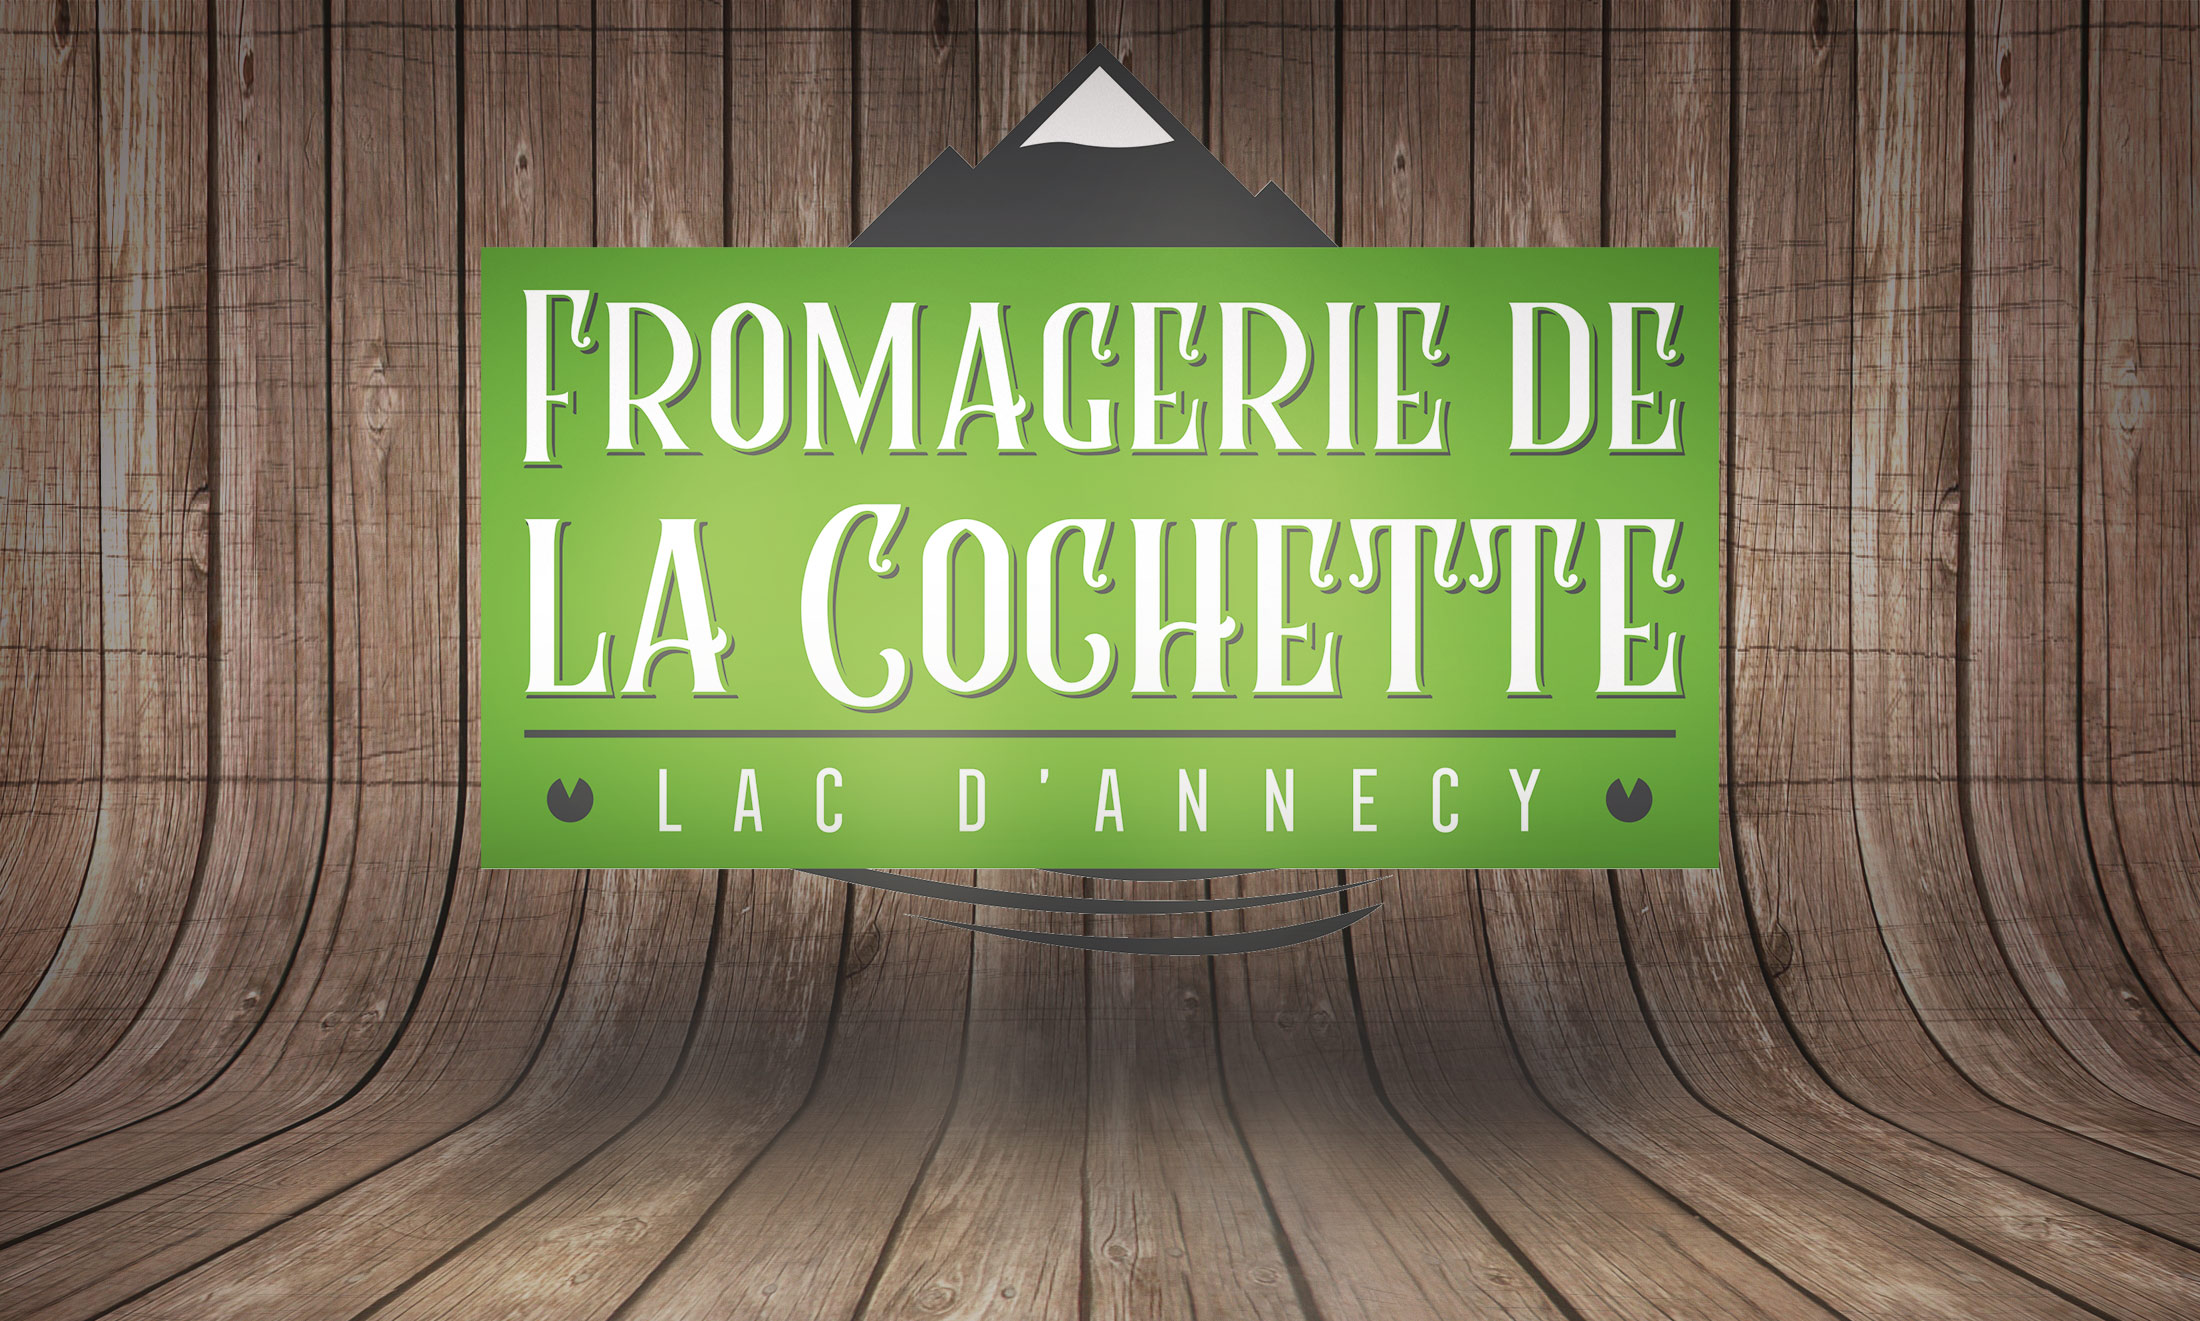 logo-fromagerie-de-la-cochette-backhround-wood